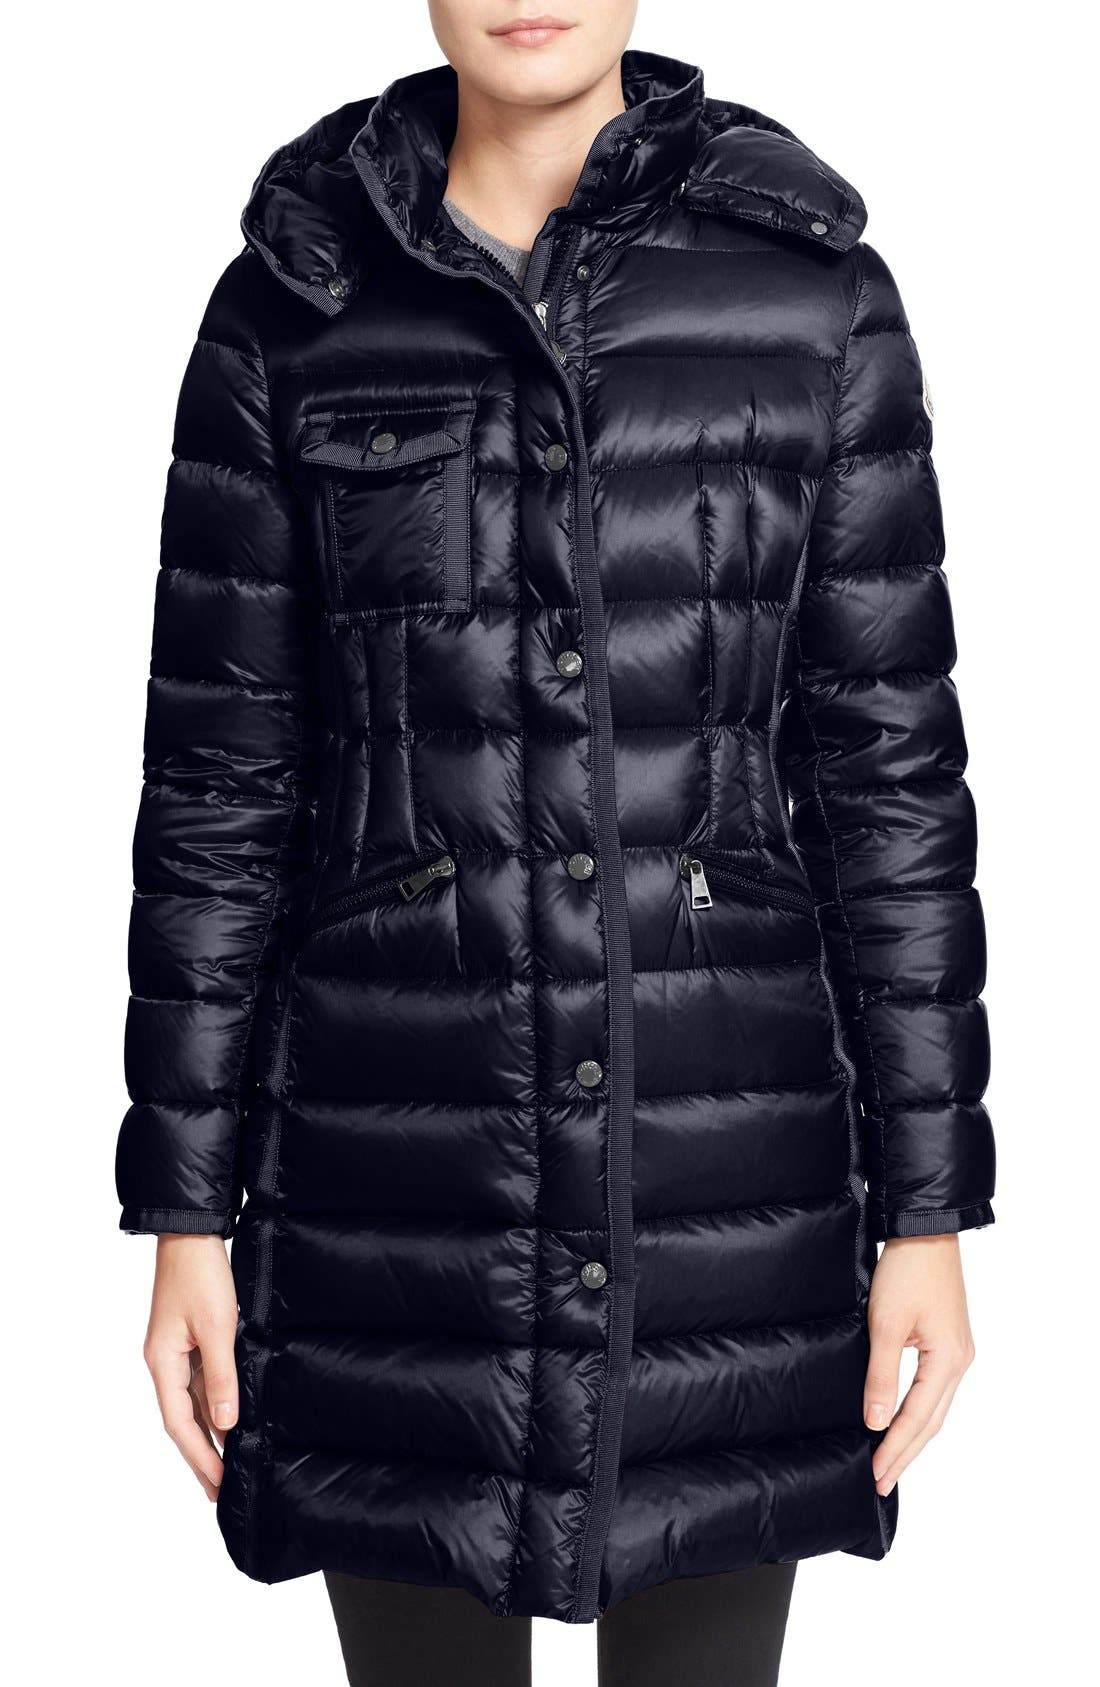 Moncler 'Hermine' Grosgrain Trim Water Resistant Down Coat